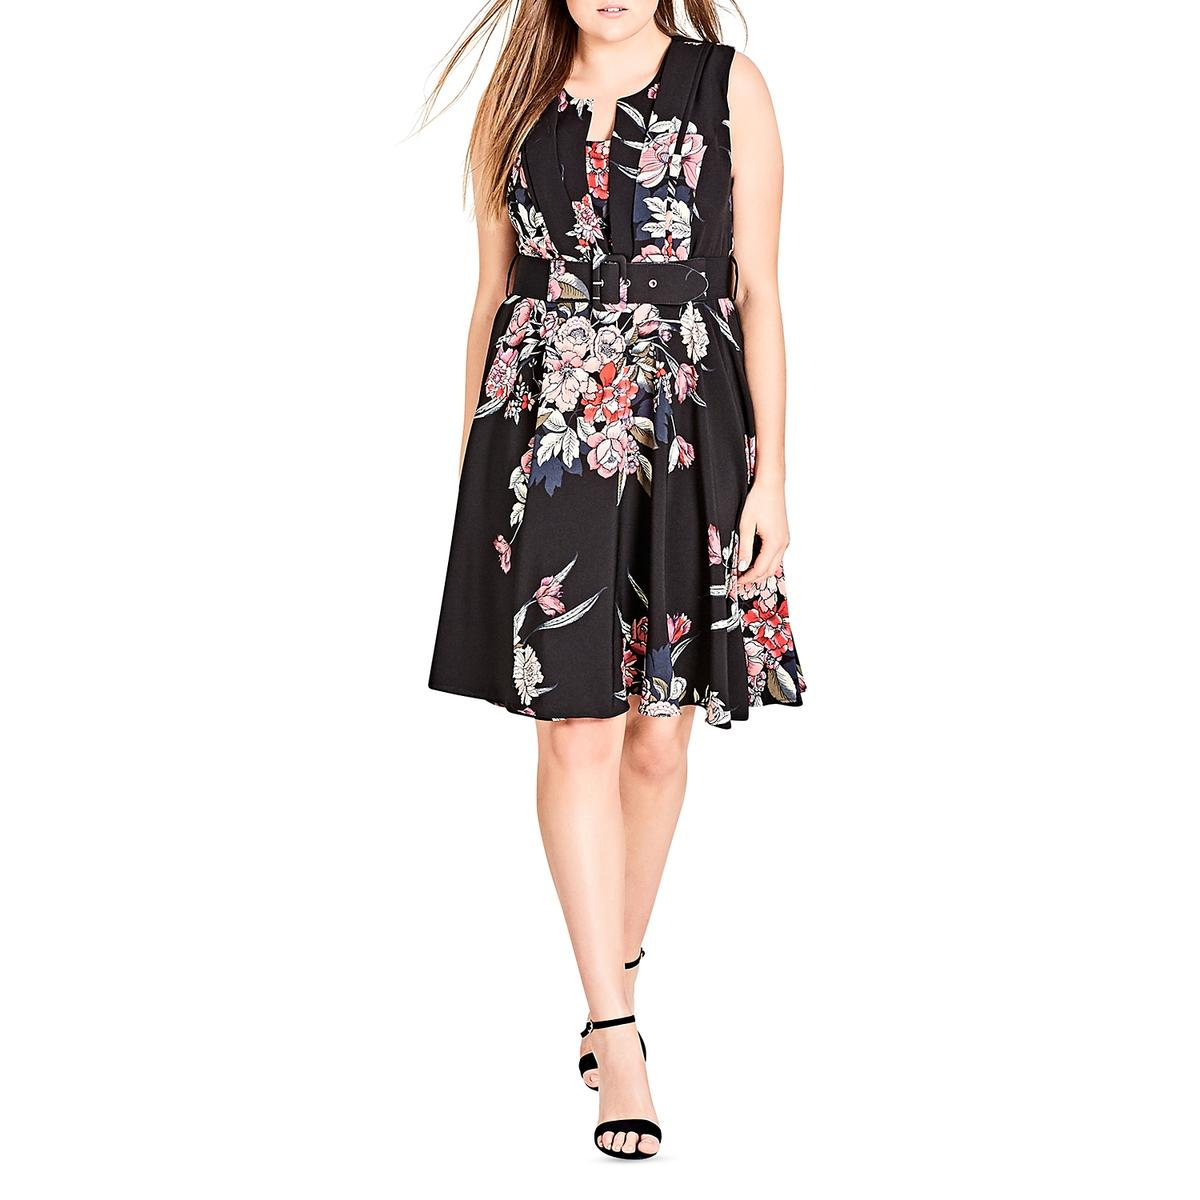 Details about City Chic Womens Misty Floral Print Office Wear to Work Dress  Plus BHFO 1422 b8ae79274